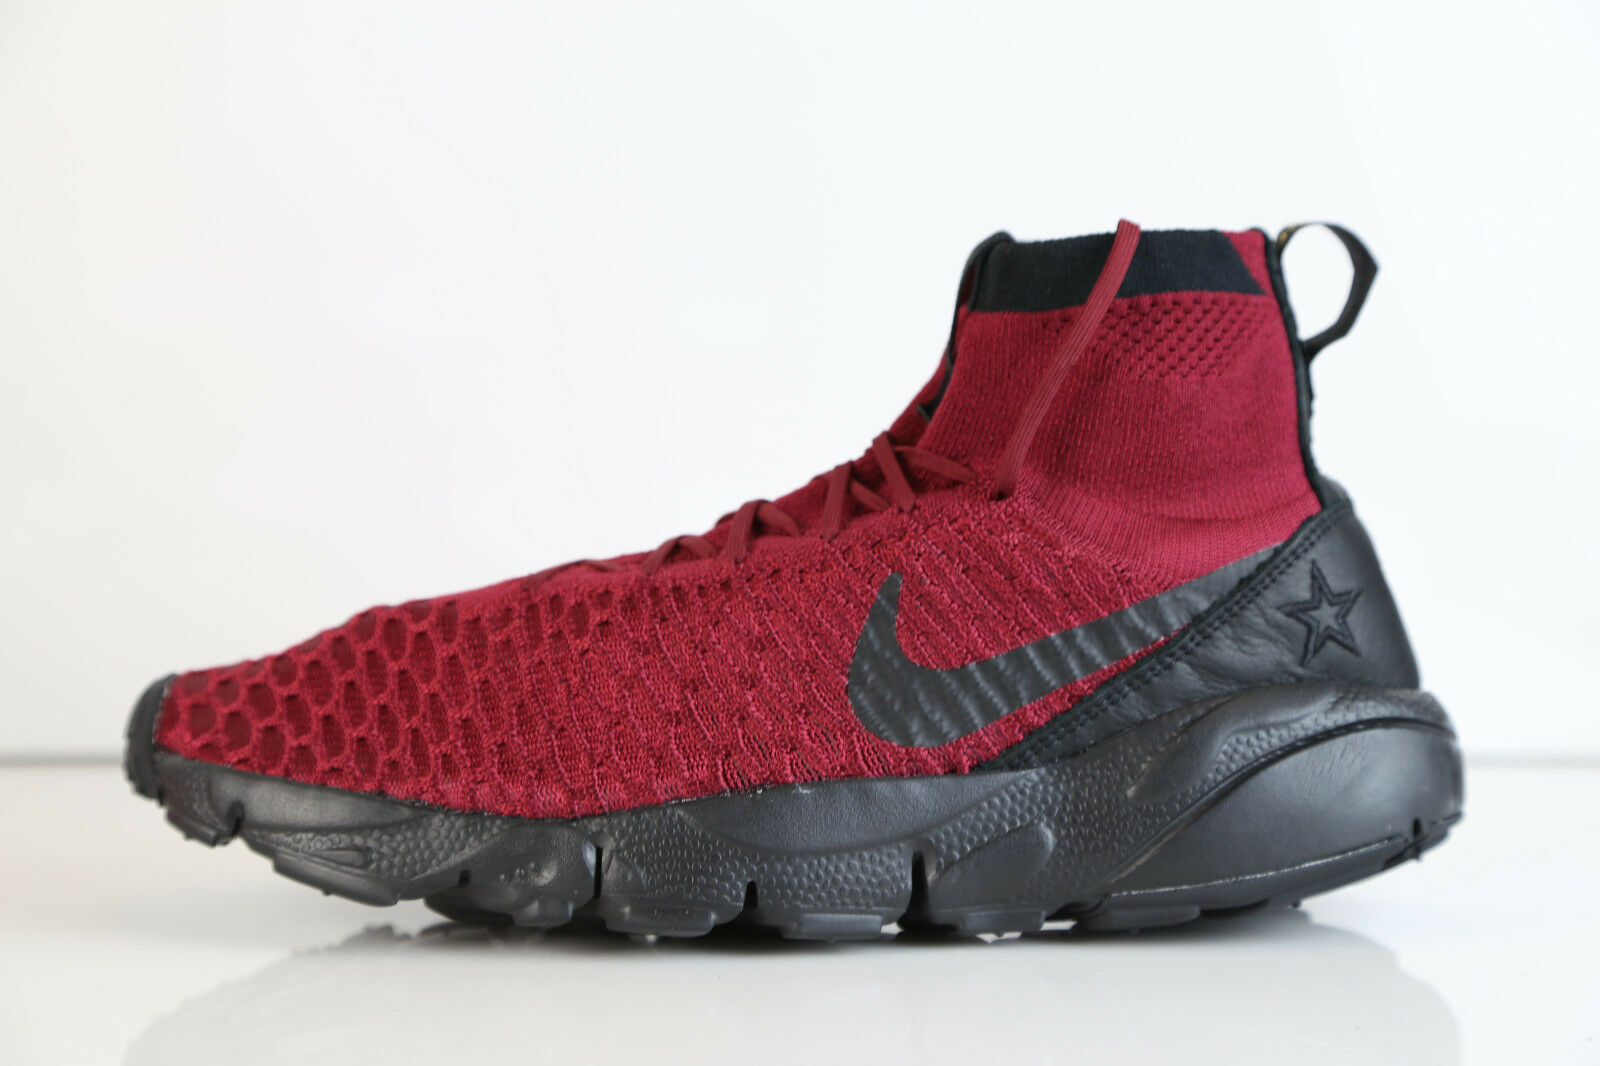 Nike Air Footscape Magista FK FC Team Red Black 830600-600 8-12 free 1 Comfortable and good-looking